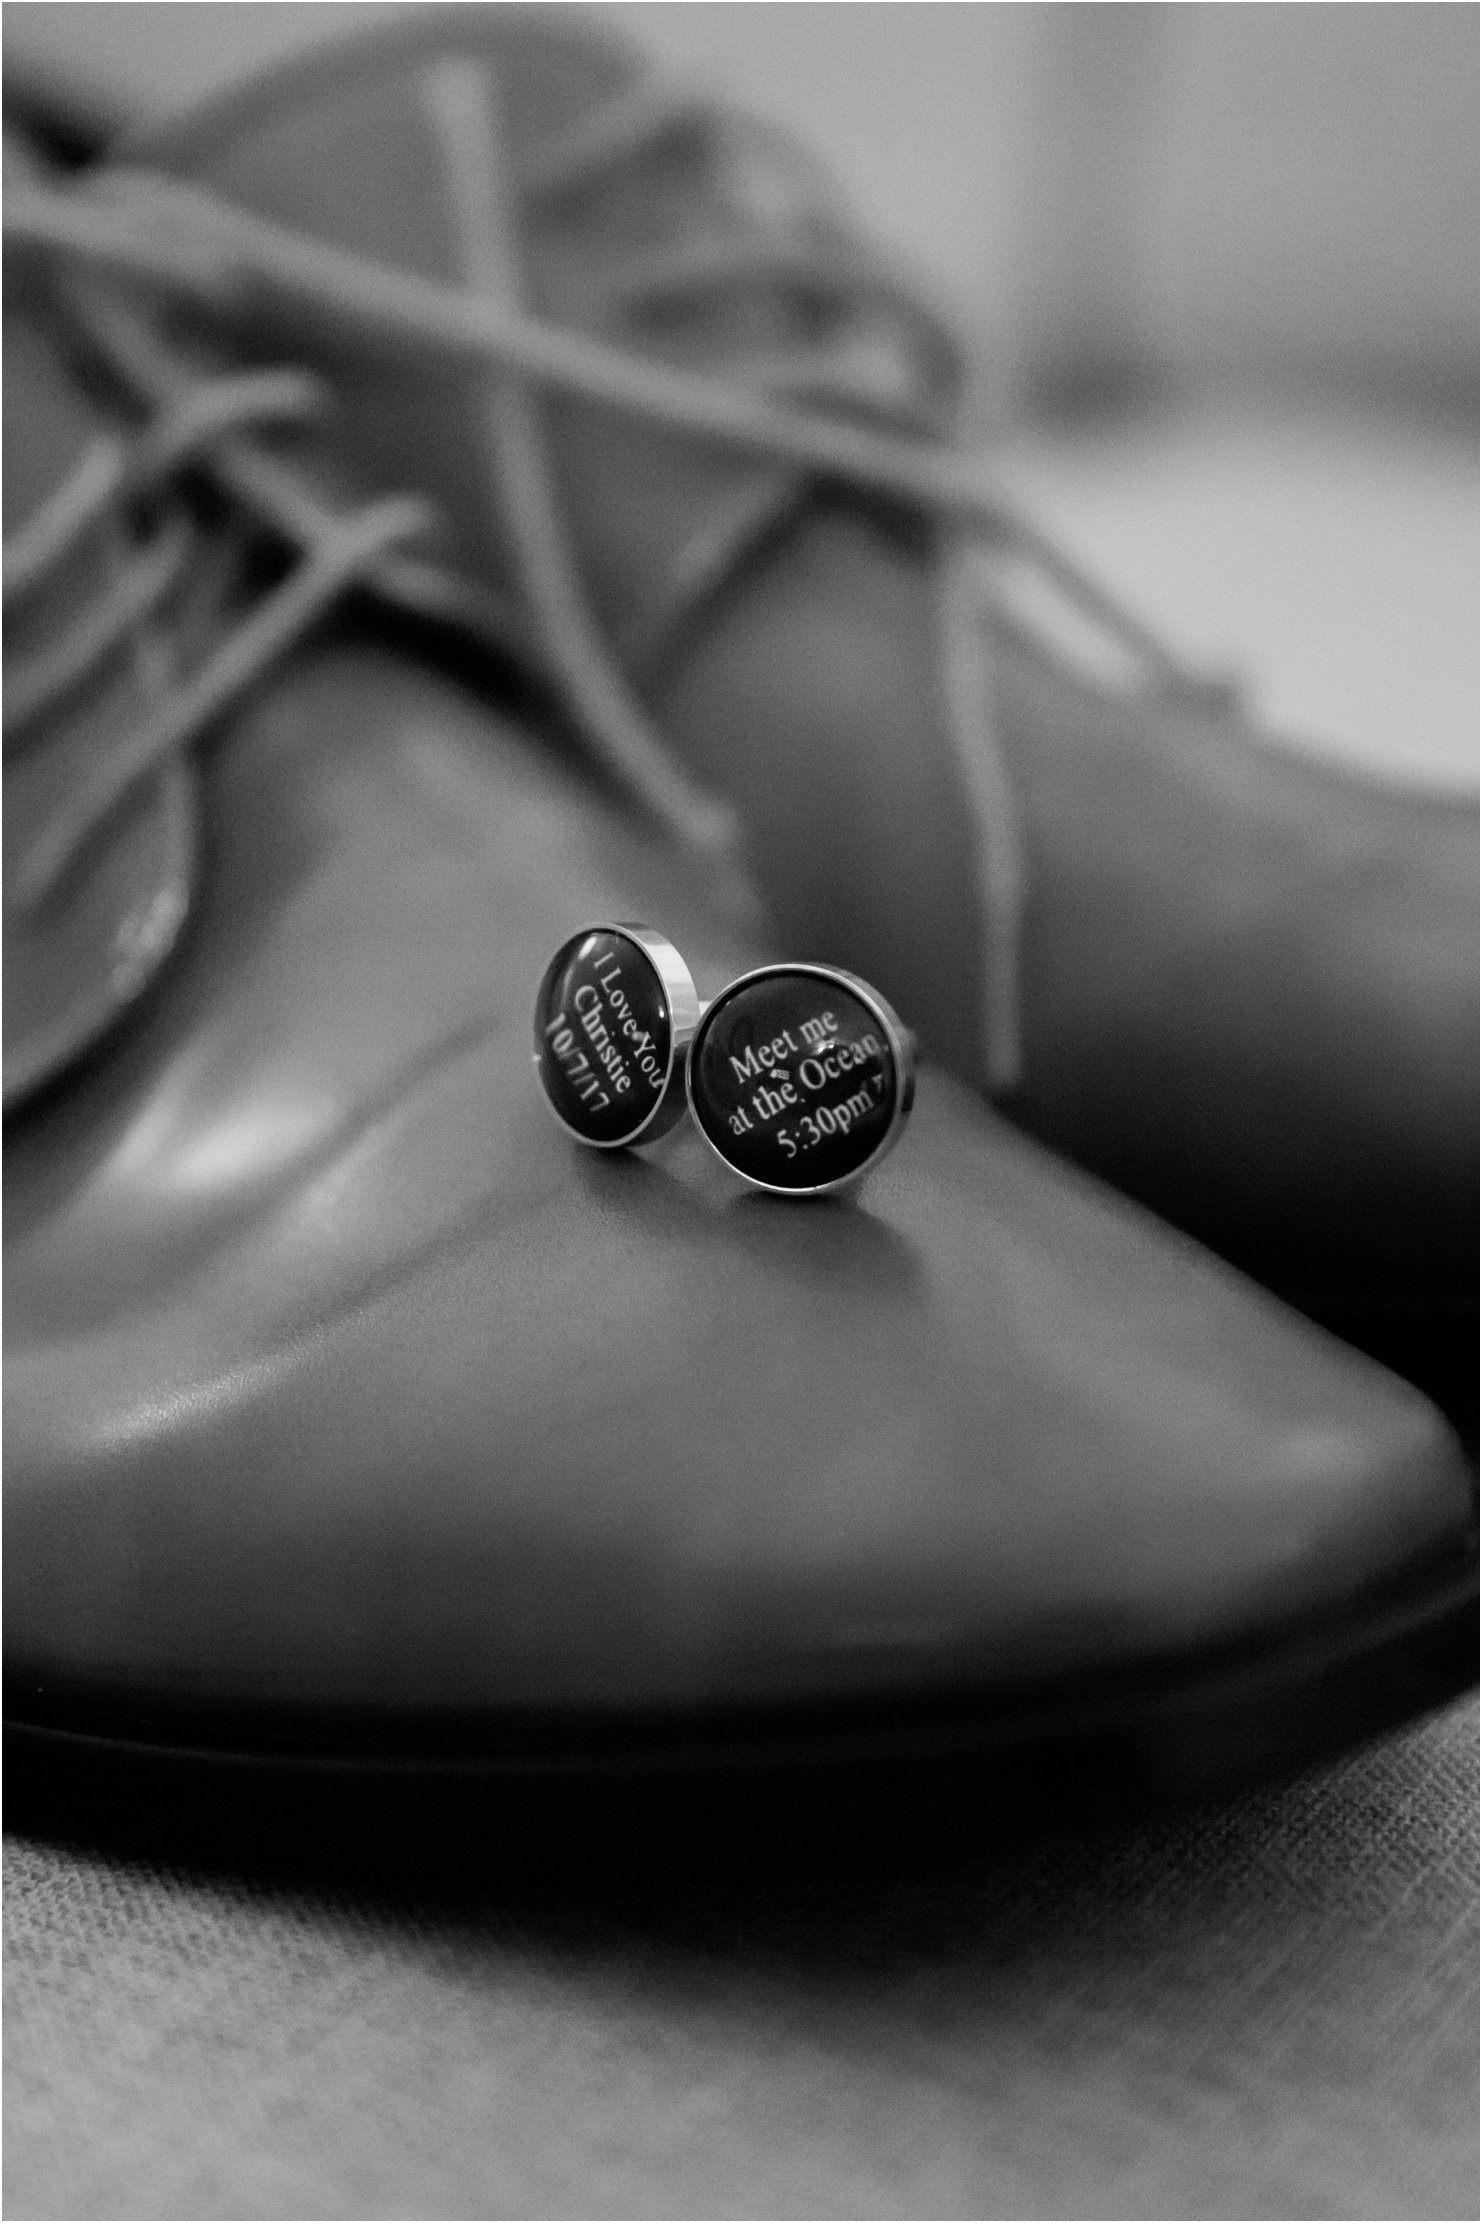 Anna Maria Island Wedding Photography of the grooms details, shoes and custom cuff links